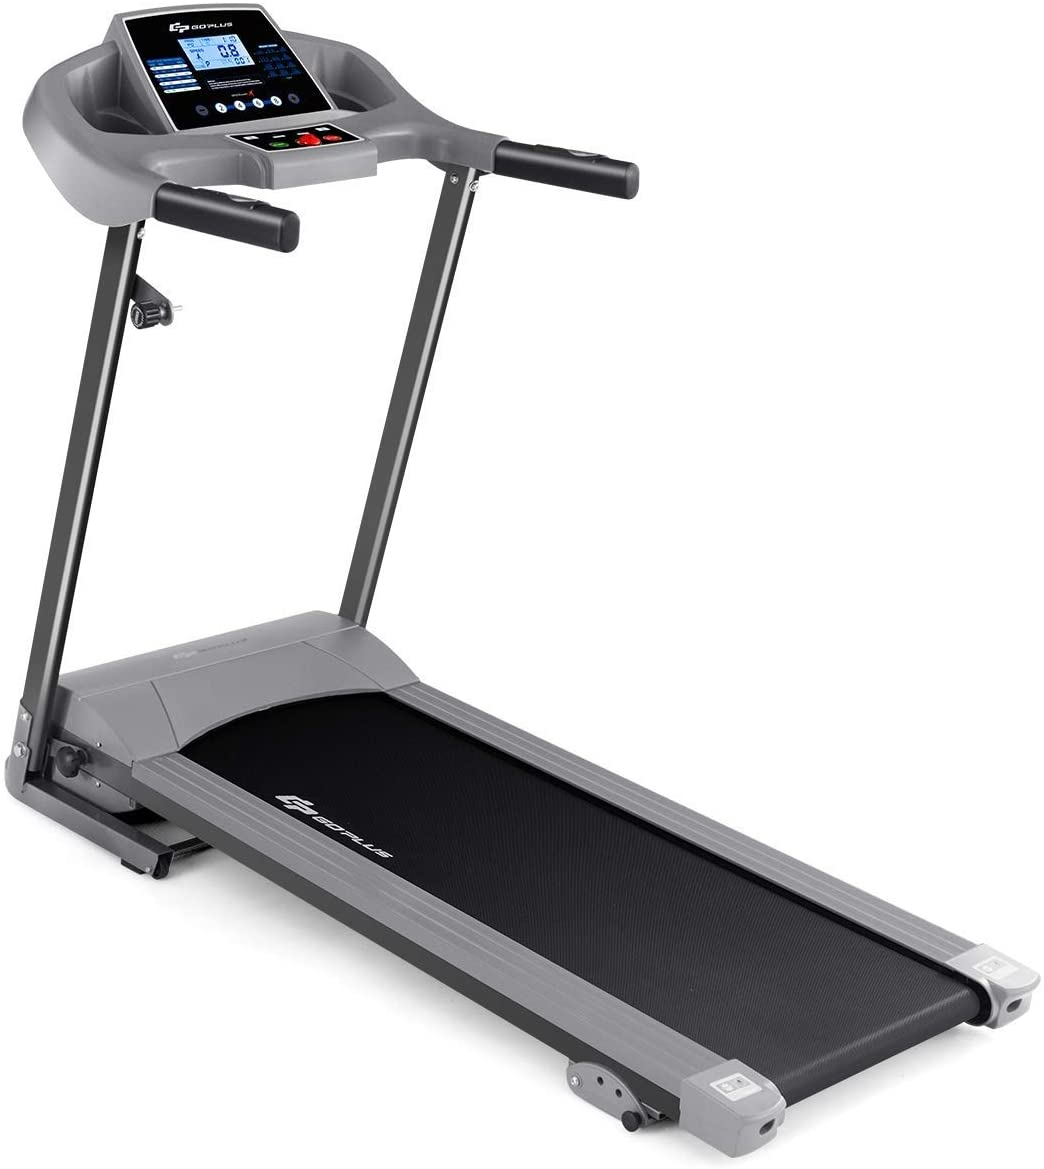 Quarantine Workout Jogging Treadmill, Folding Running Machine, Electric Treadmill Fitness Motorized 2.25HP 12 Modes Adjustable, 265 Lbs Max Load, LCD Display Safety Key, Home Walking Platform